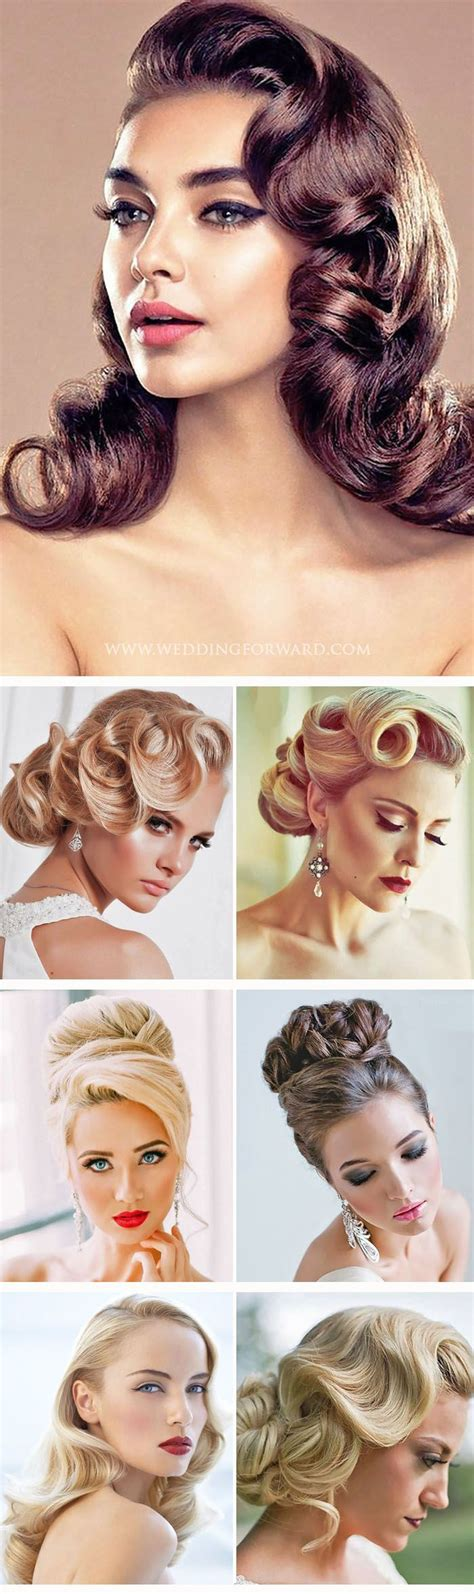 50s updo hairstyles best 25 vintage hairstyles ideas on pinterest